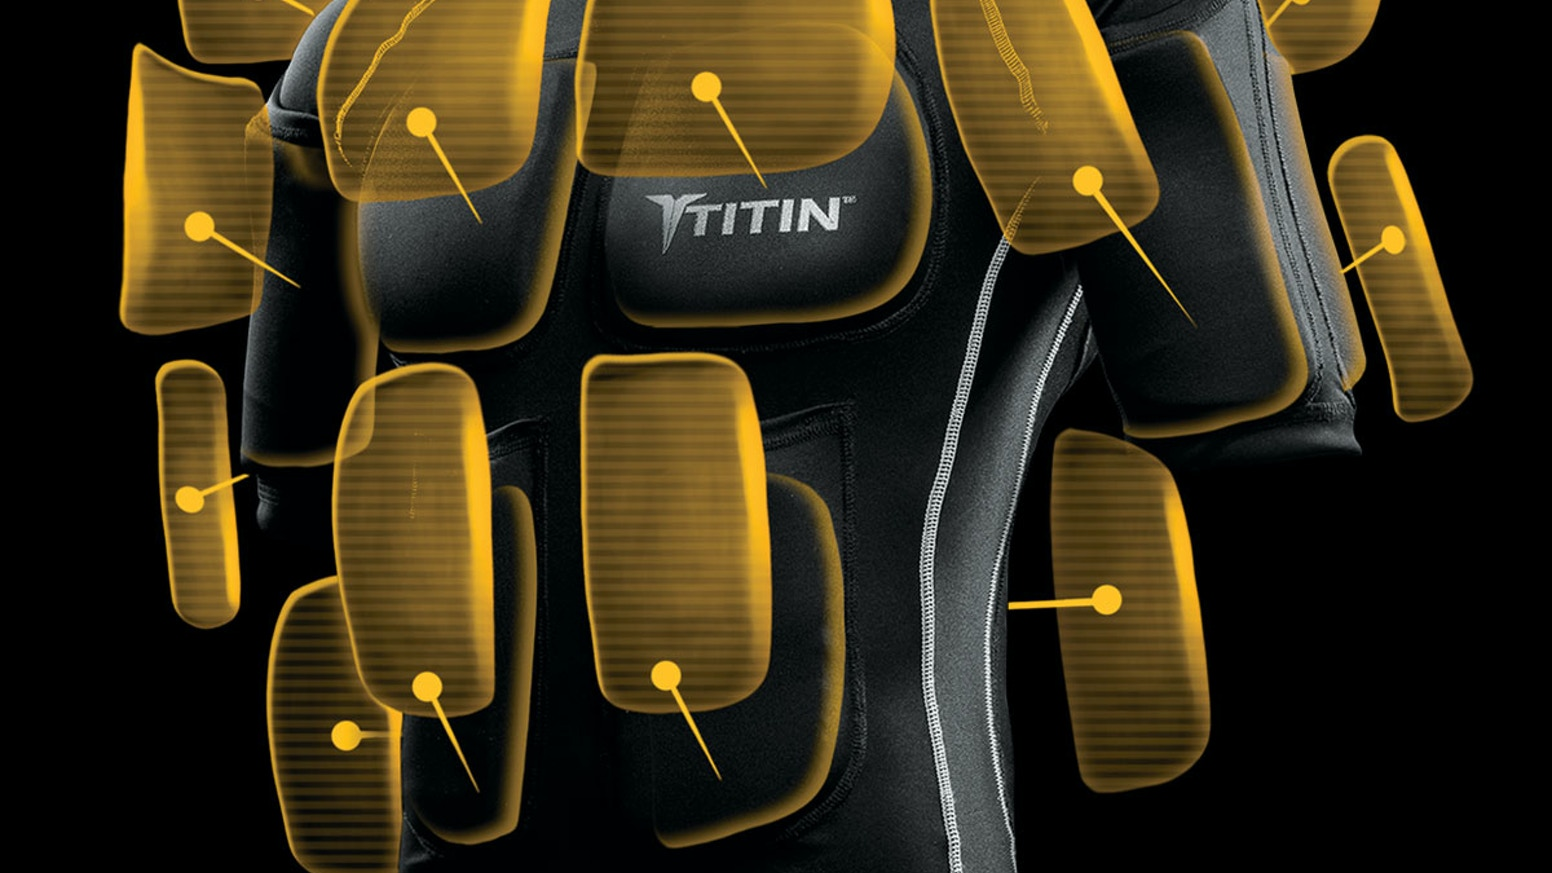 TITIN offers you the world's only weighted compression gear. Only question left is... Can you KEEP UP?